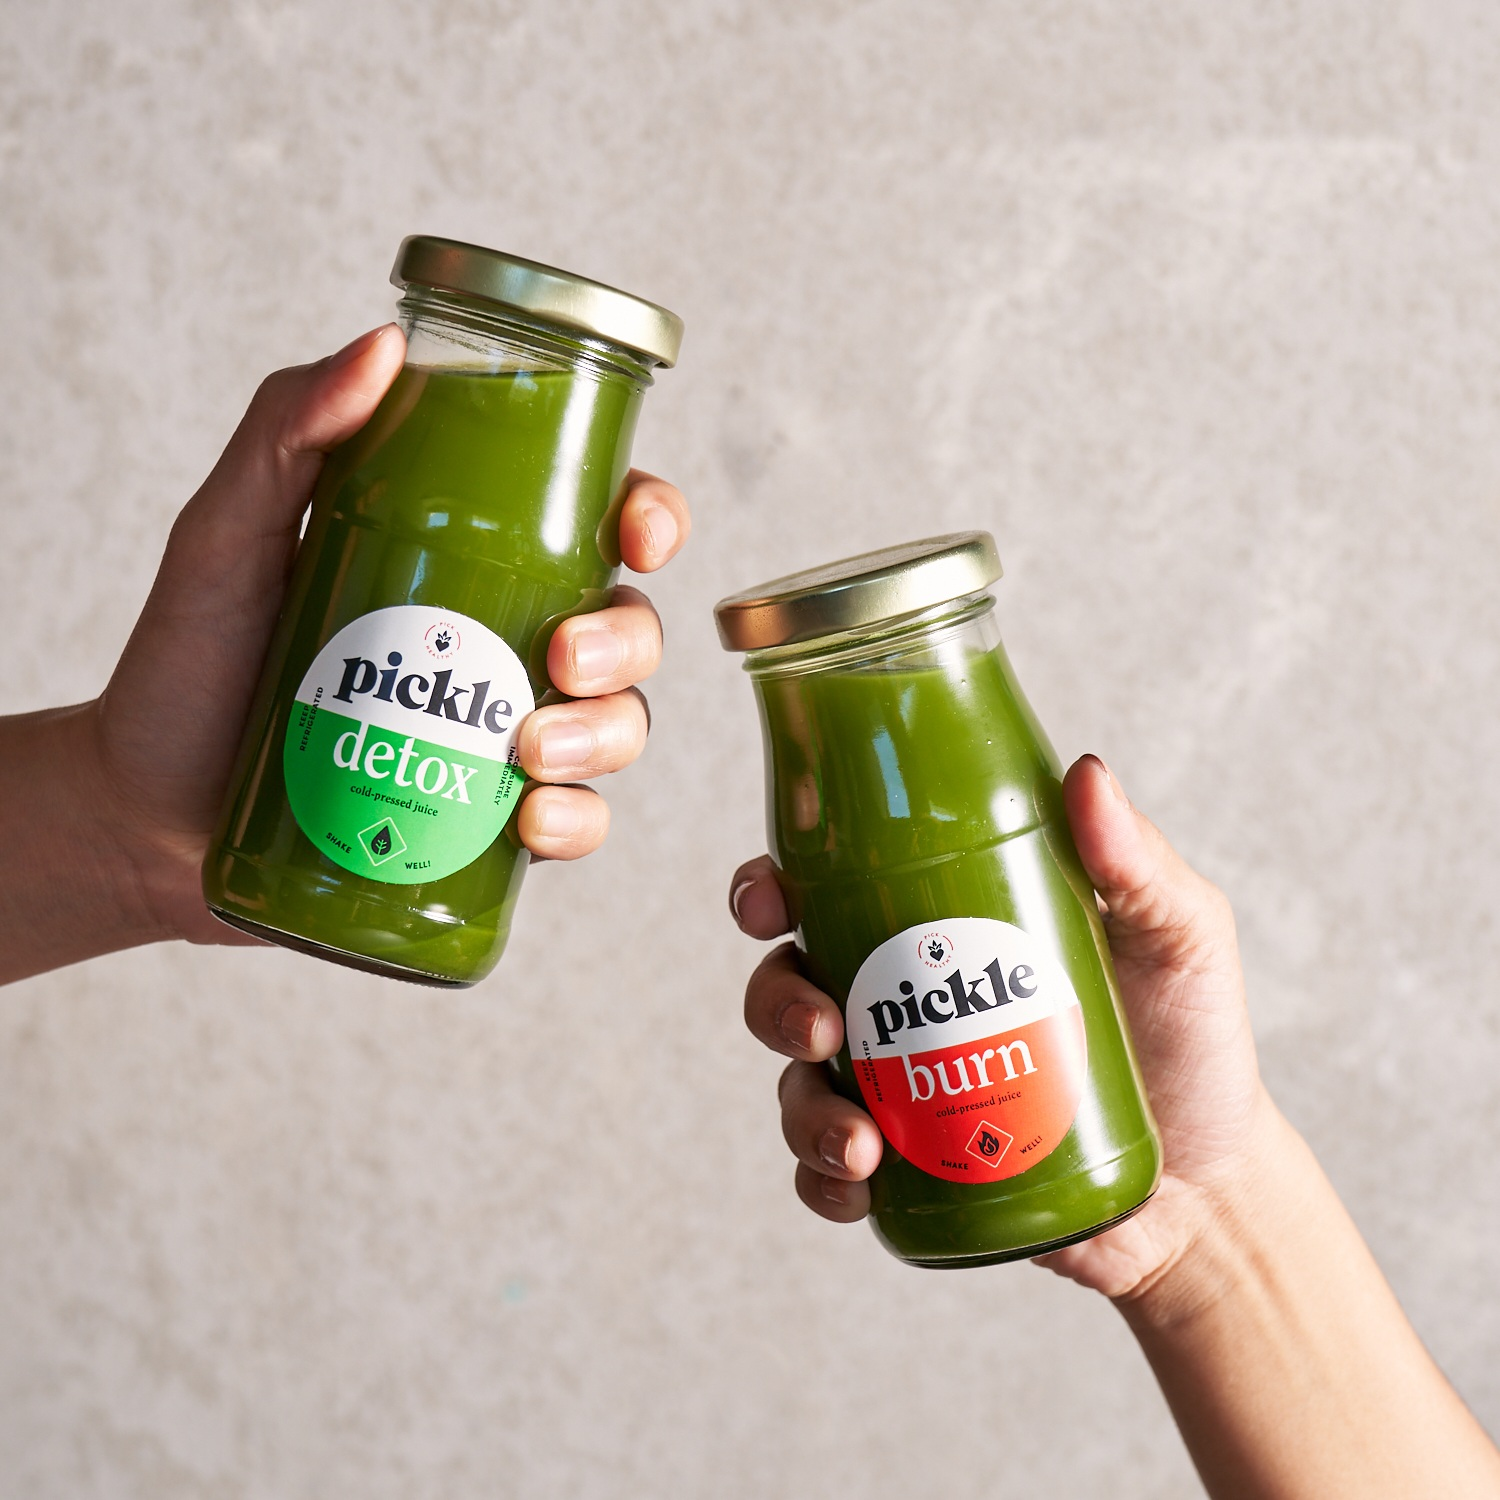 Customize your plan - Need a boost? Add a supercharged bottle of our all-natural green juice powered by 100% Pure Barley Grass and Green Coffee Bean Extract! Upgrade to our juice program and start reaping even more benefits.Don't forget to let us know about any allergies. See our full guide to allergens and special requests.